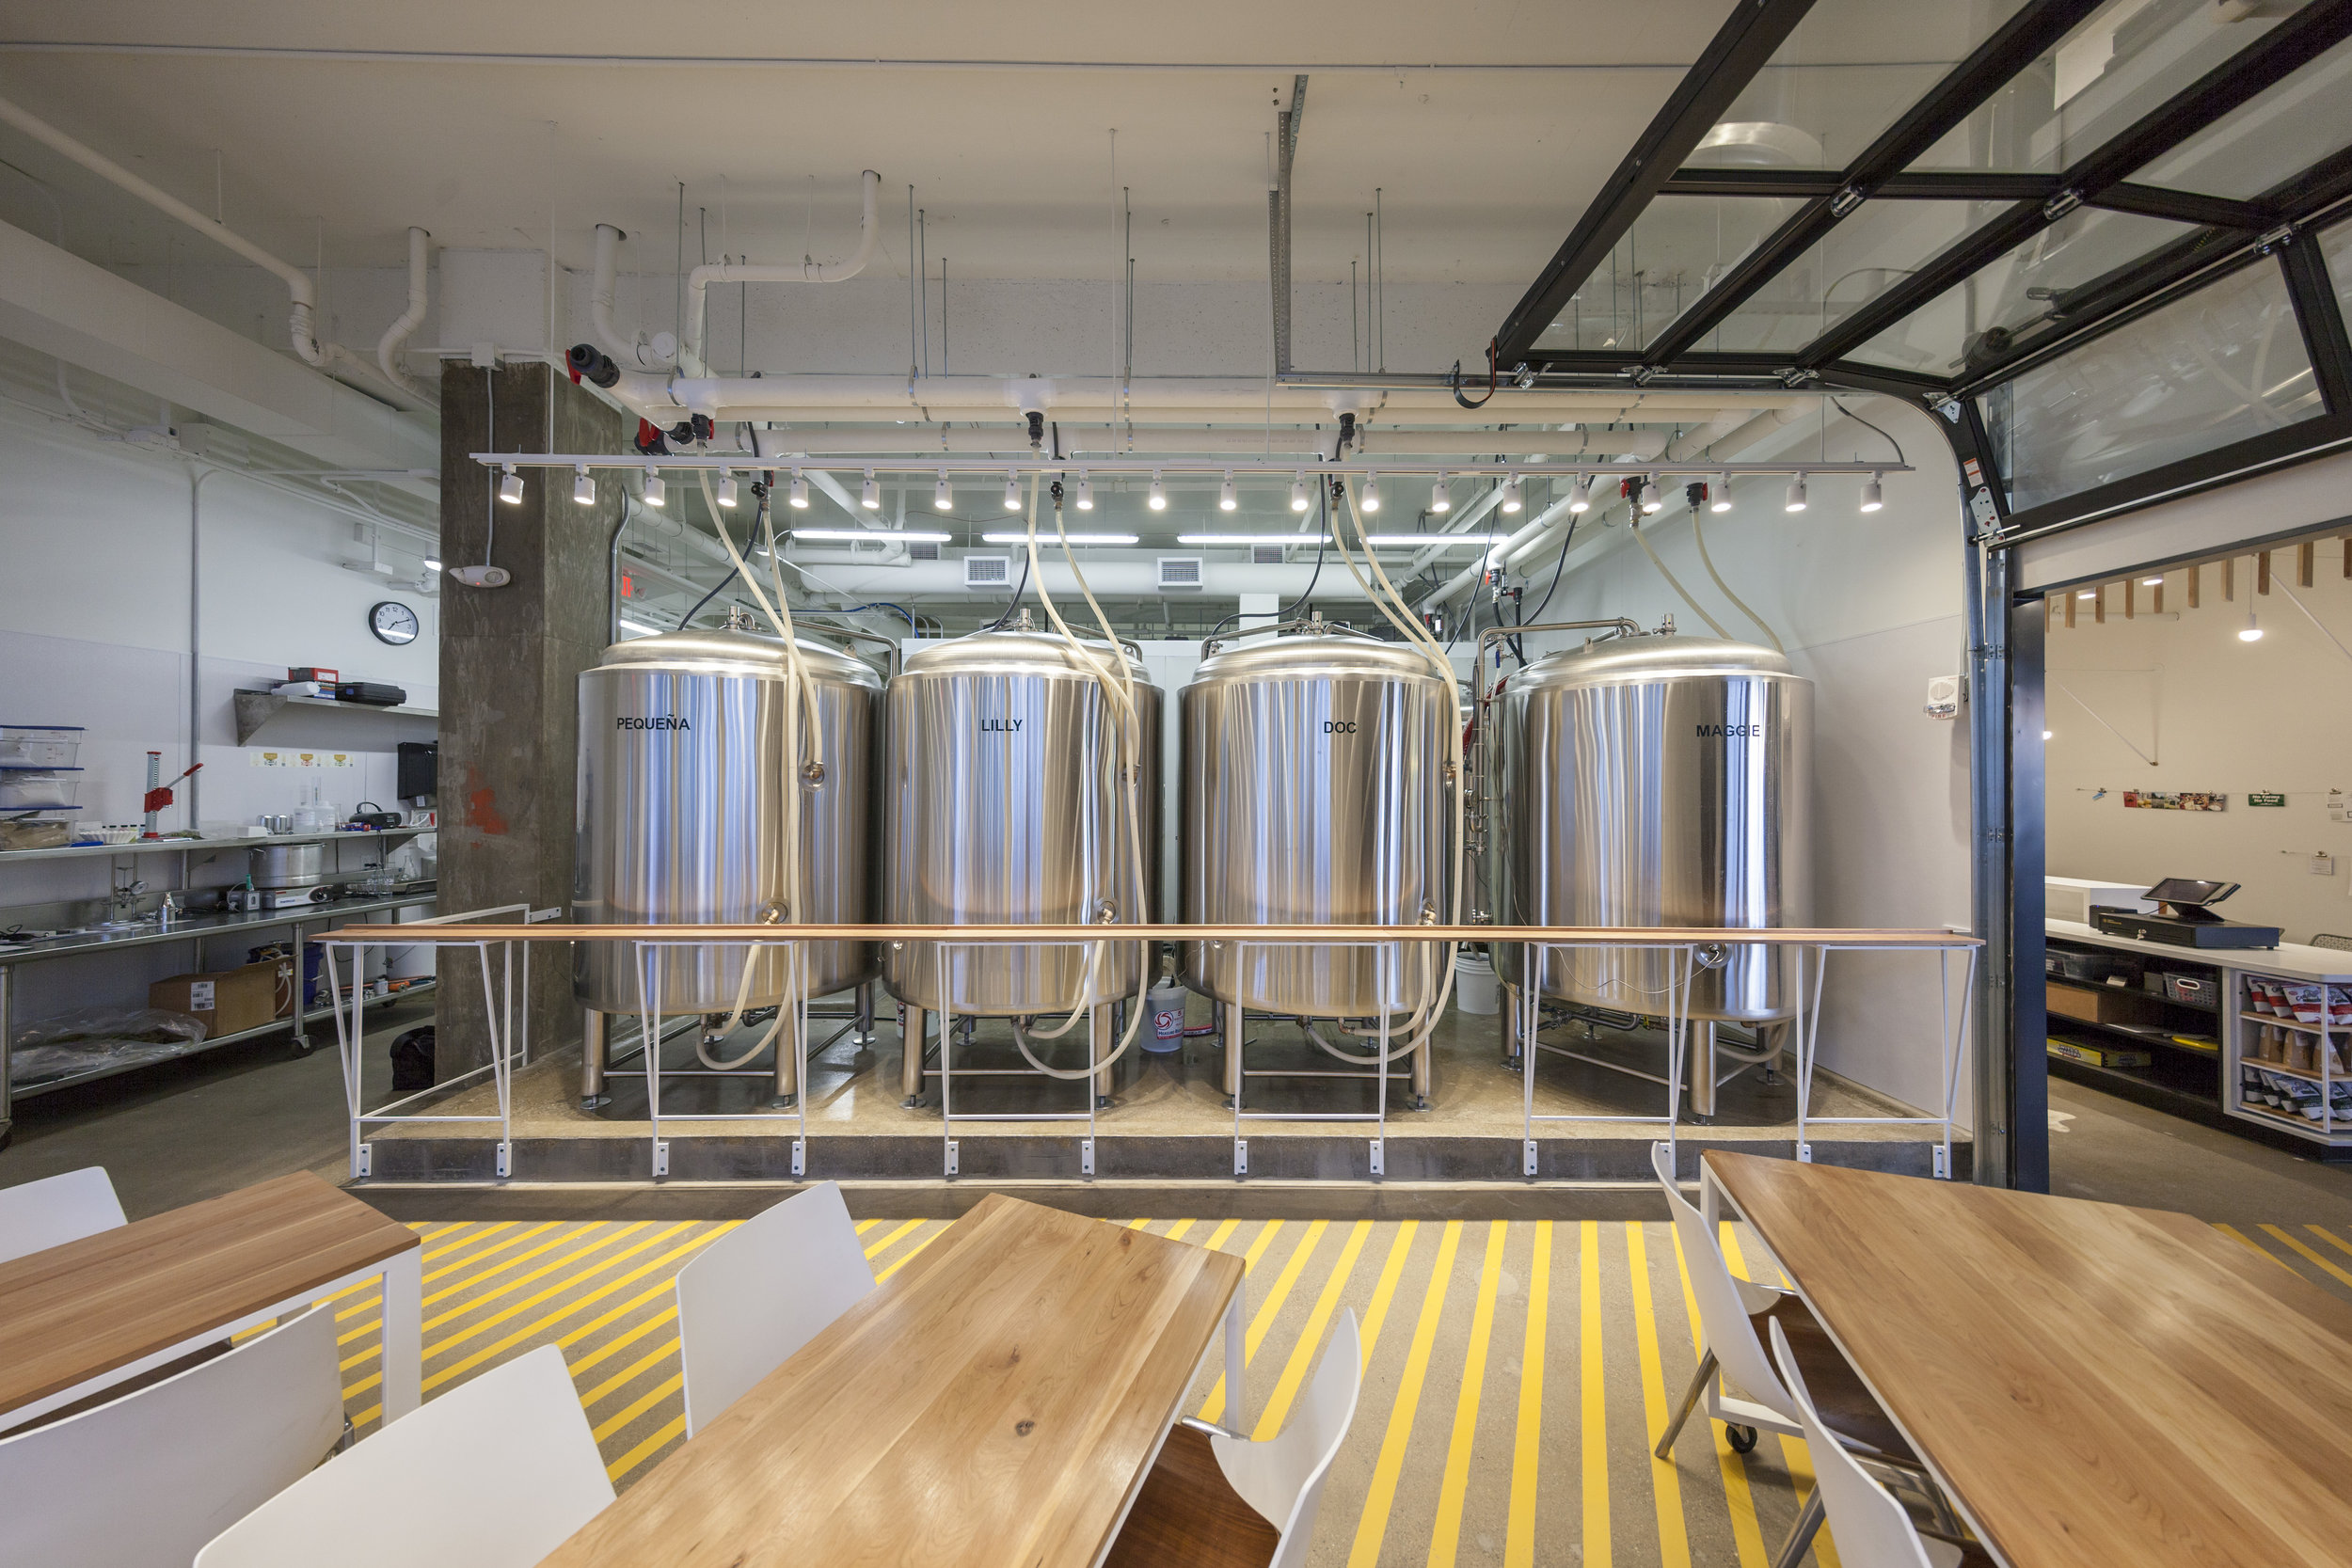 Bløm Meadworks brewery and taproom by Synecdoche Design Studio